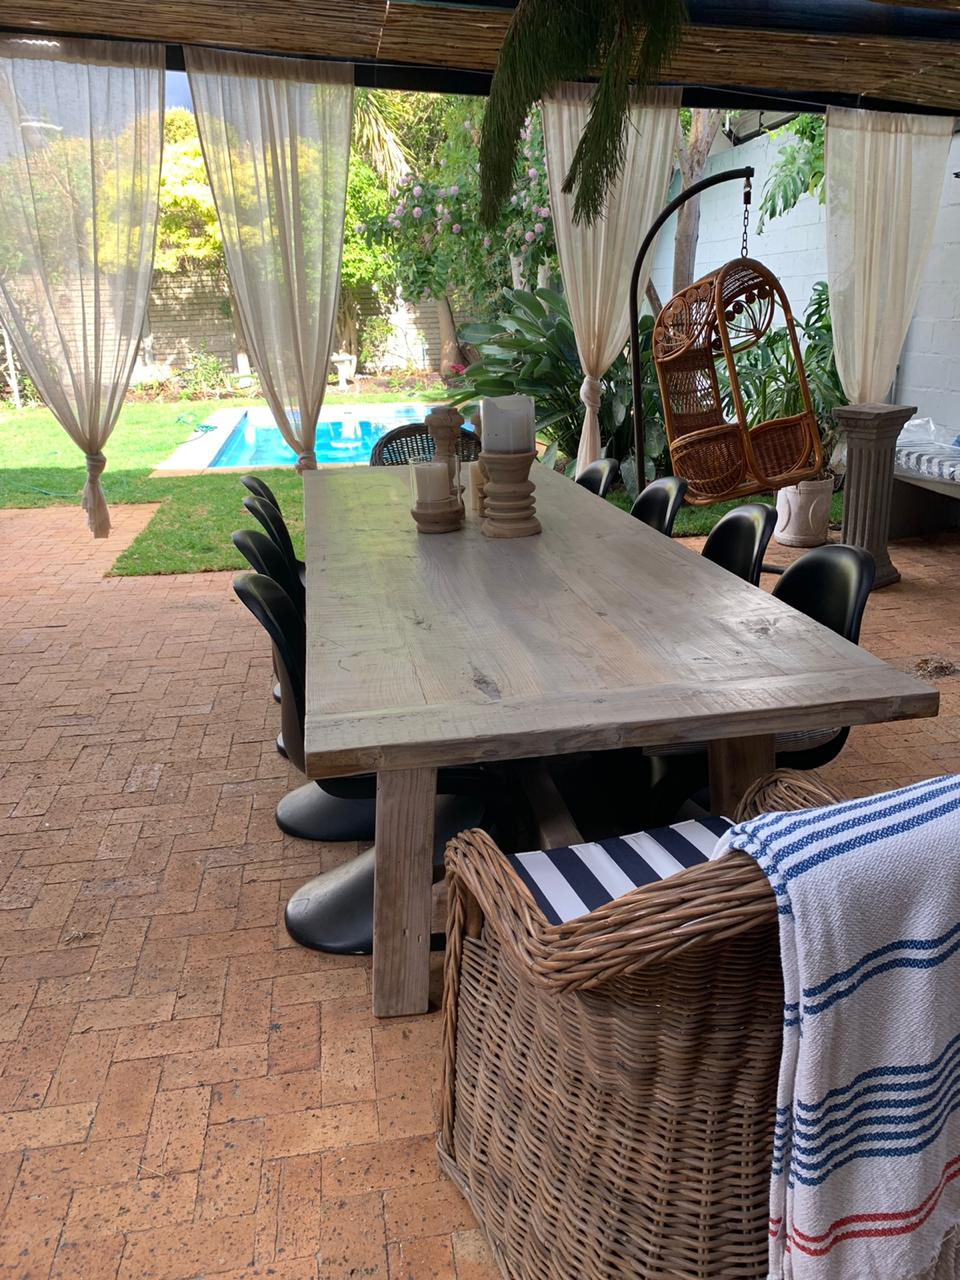 3x 1.1m rustic recycled table.